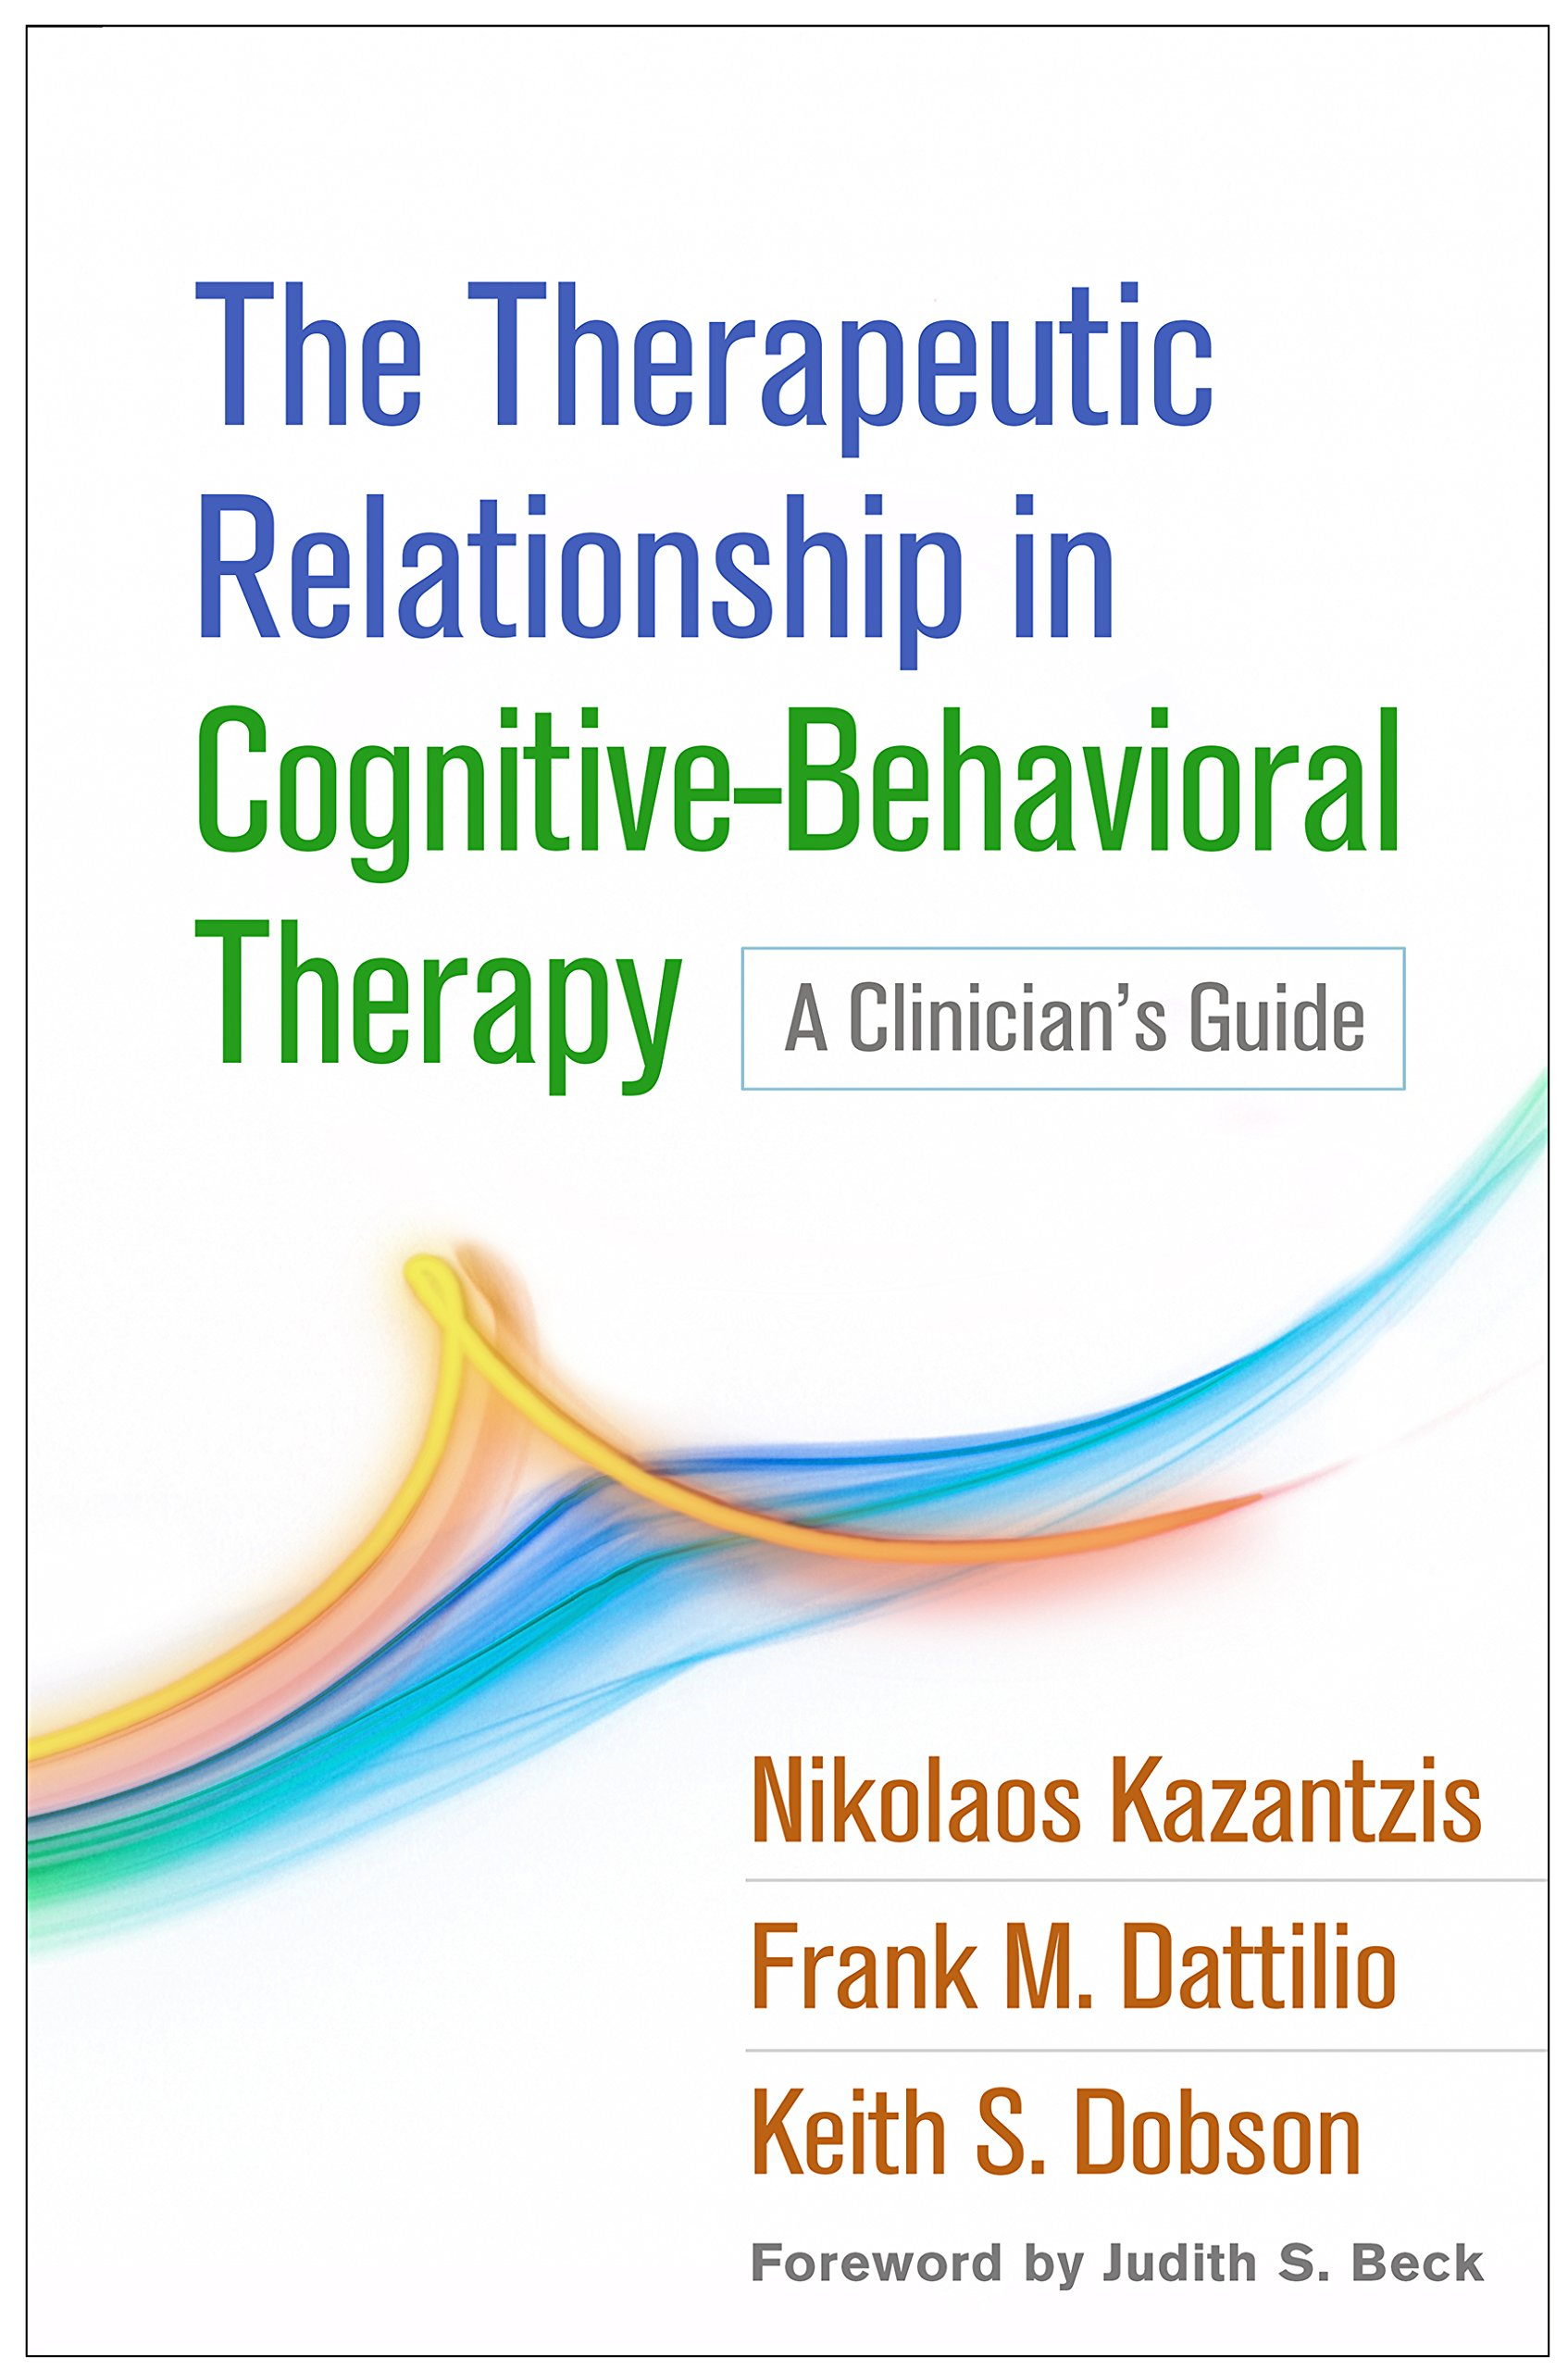 The Therapeutic Relationship In Cognitive Behavioral Therapy  A Clinician's Guide